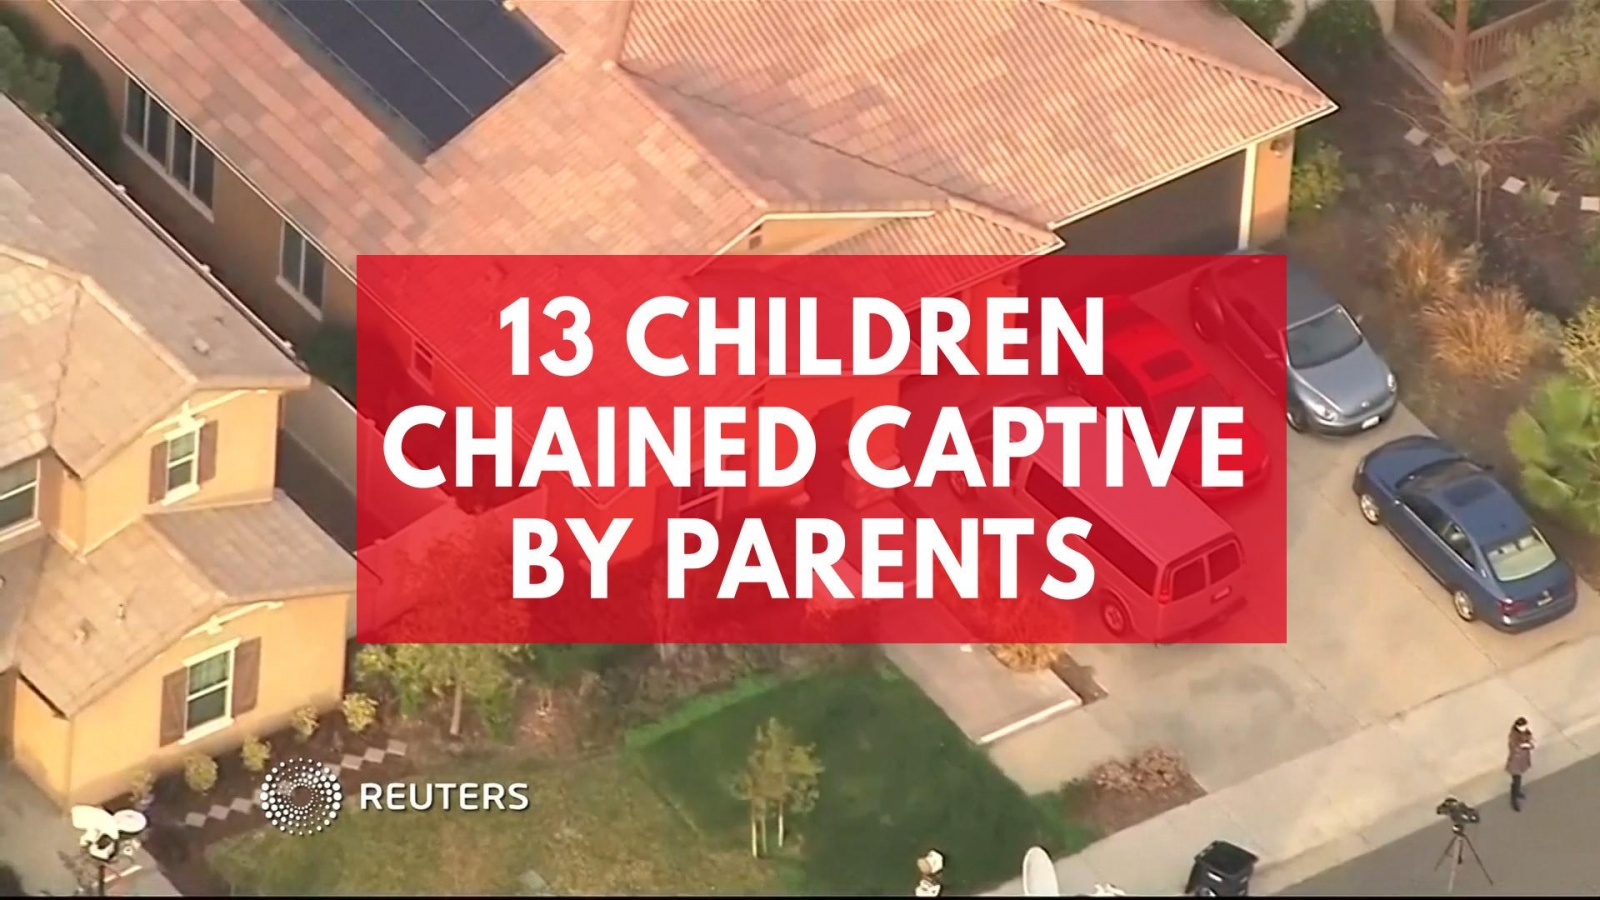 13 children chained captive by parents in California